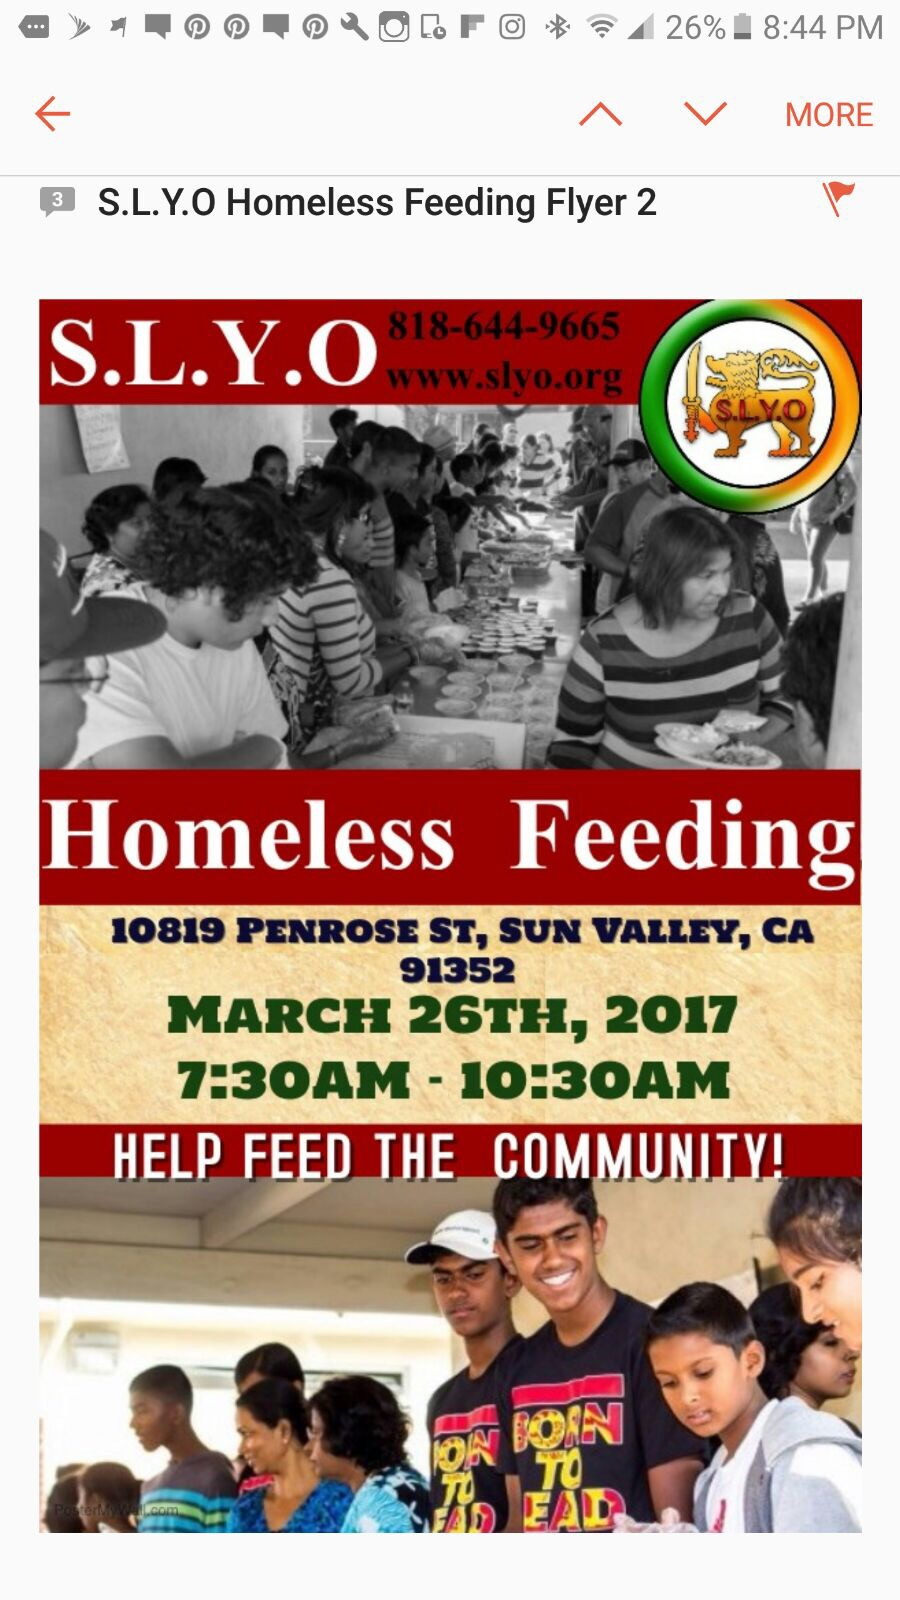 Homeless Feeding